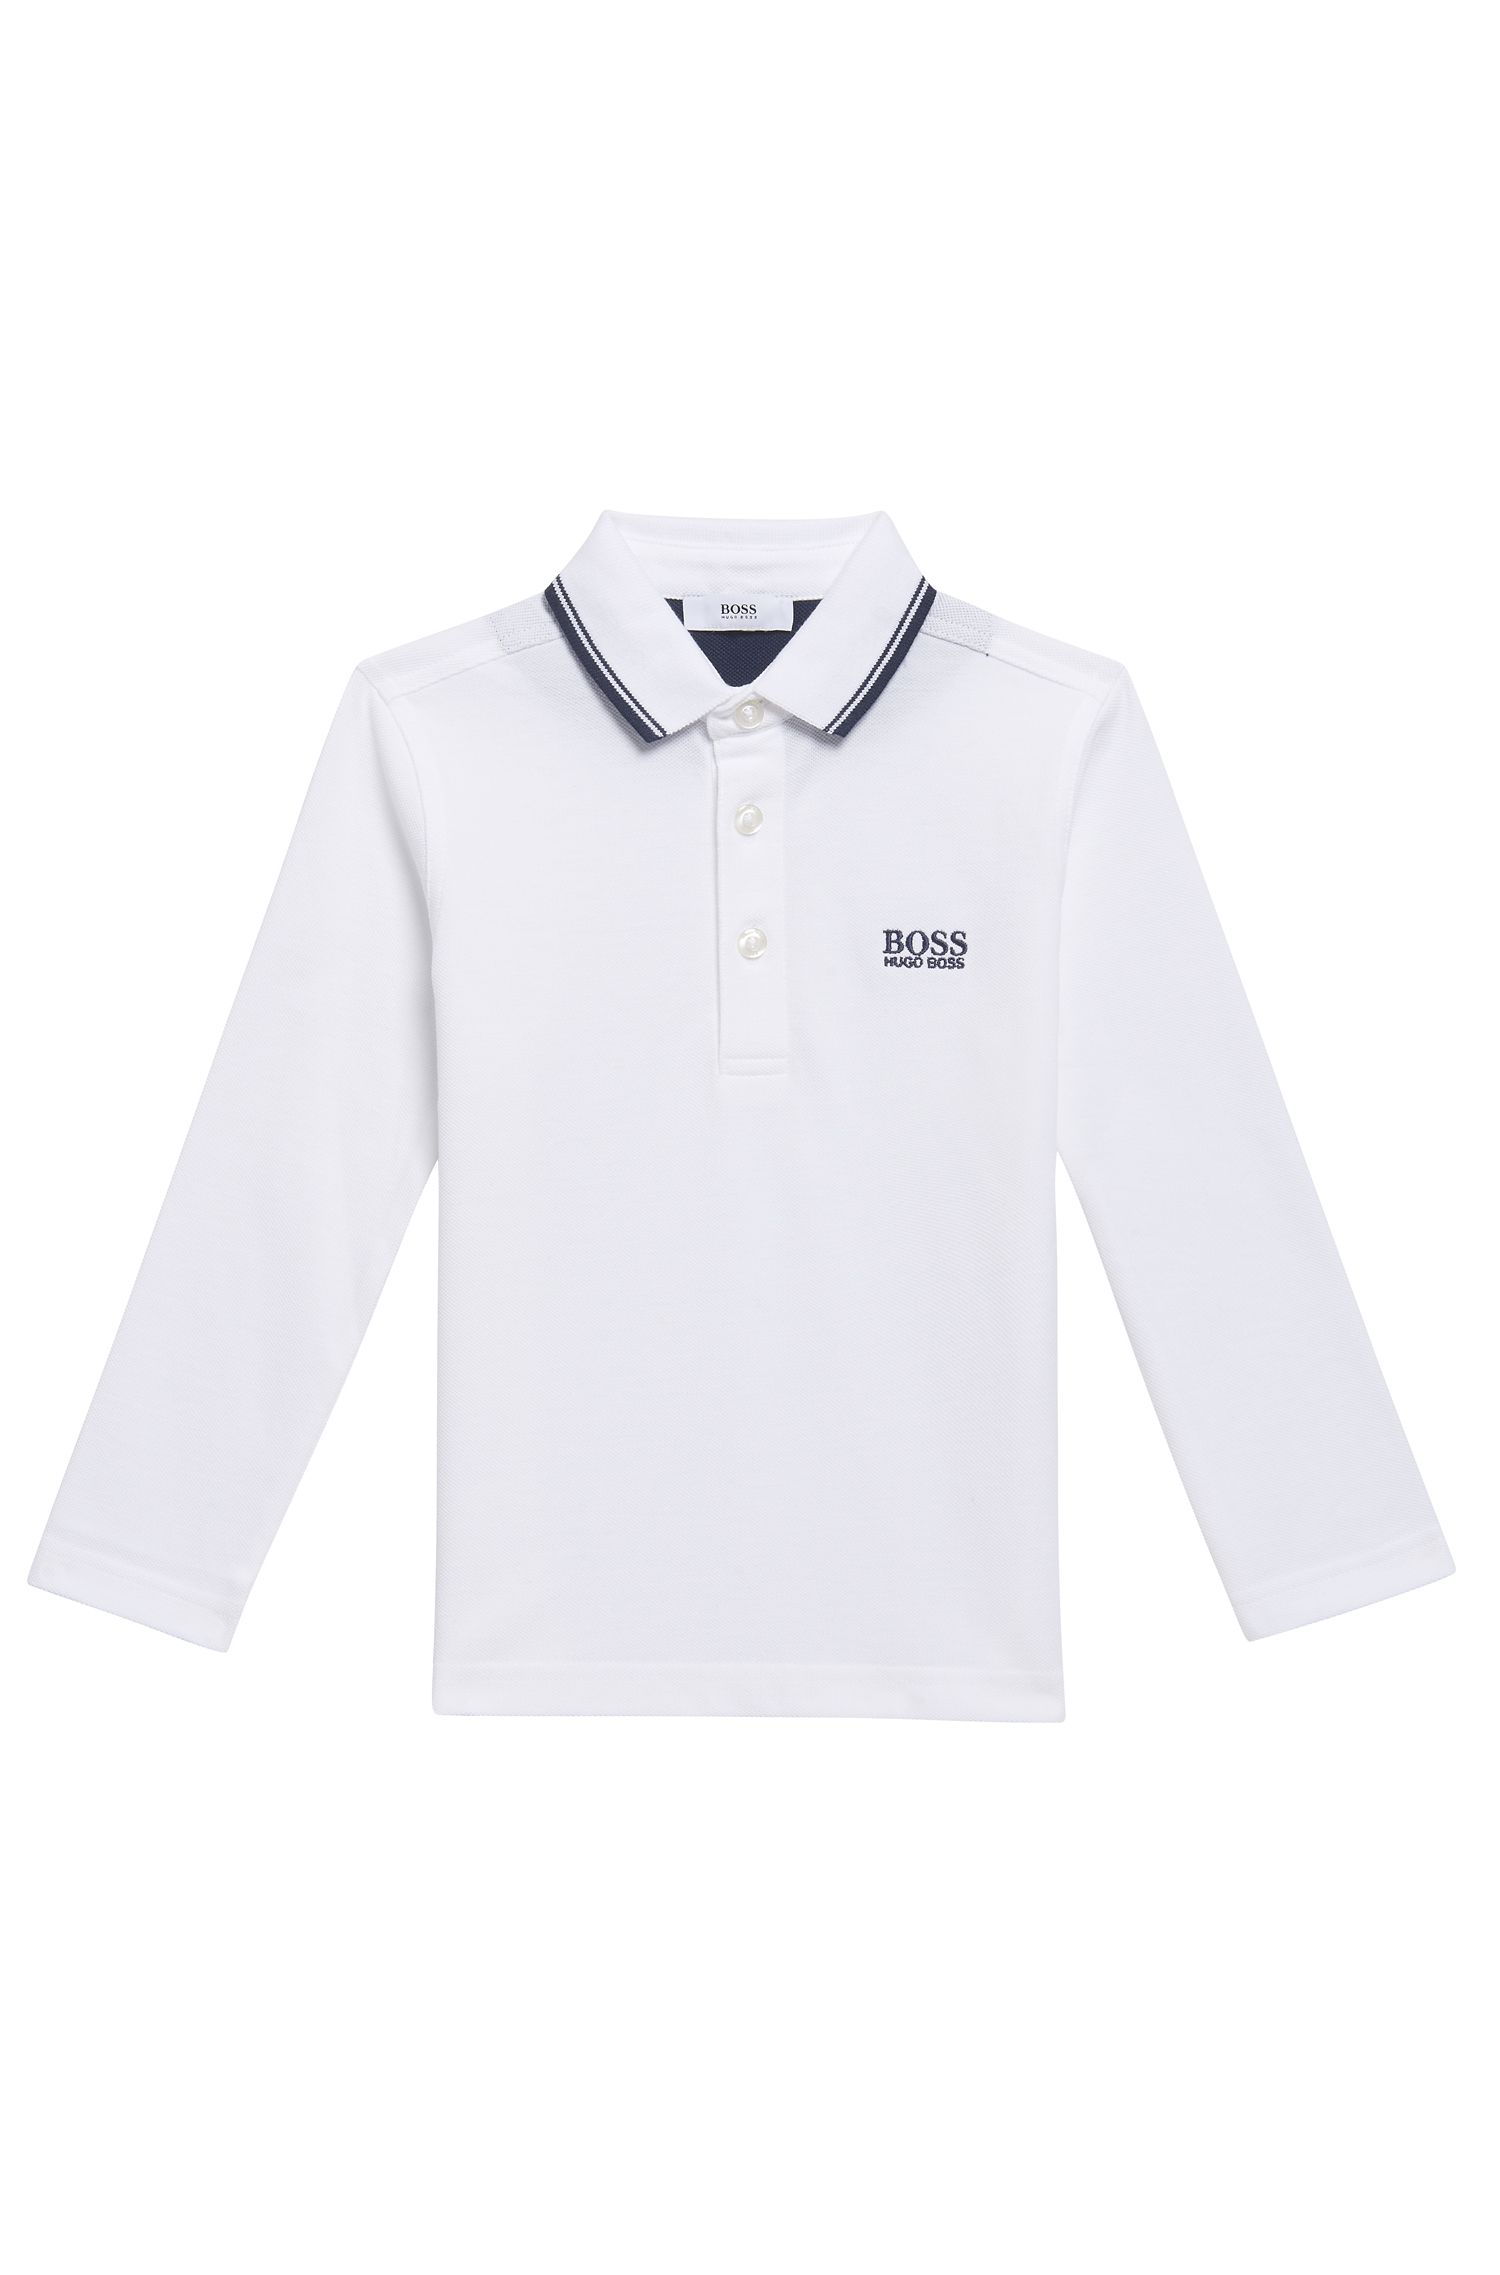 'J25V24' | Boys Cotton Polo Shirt